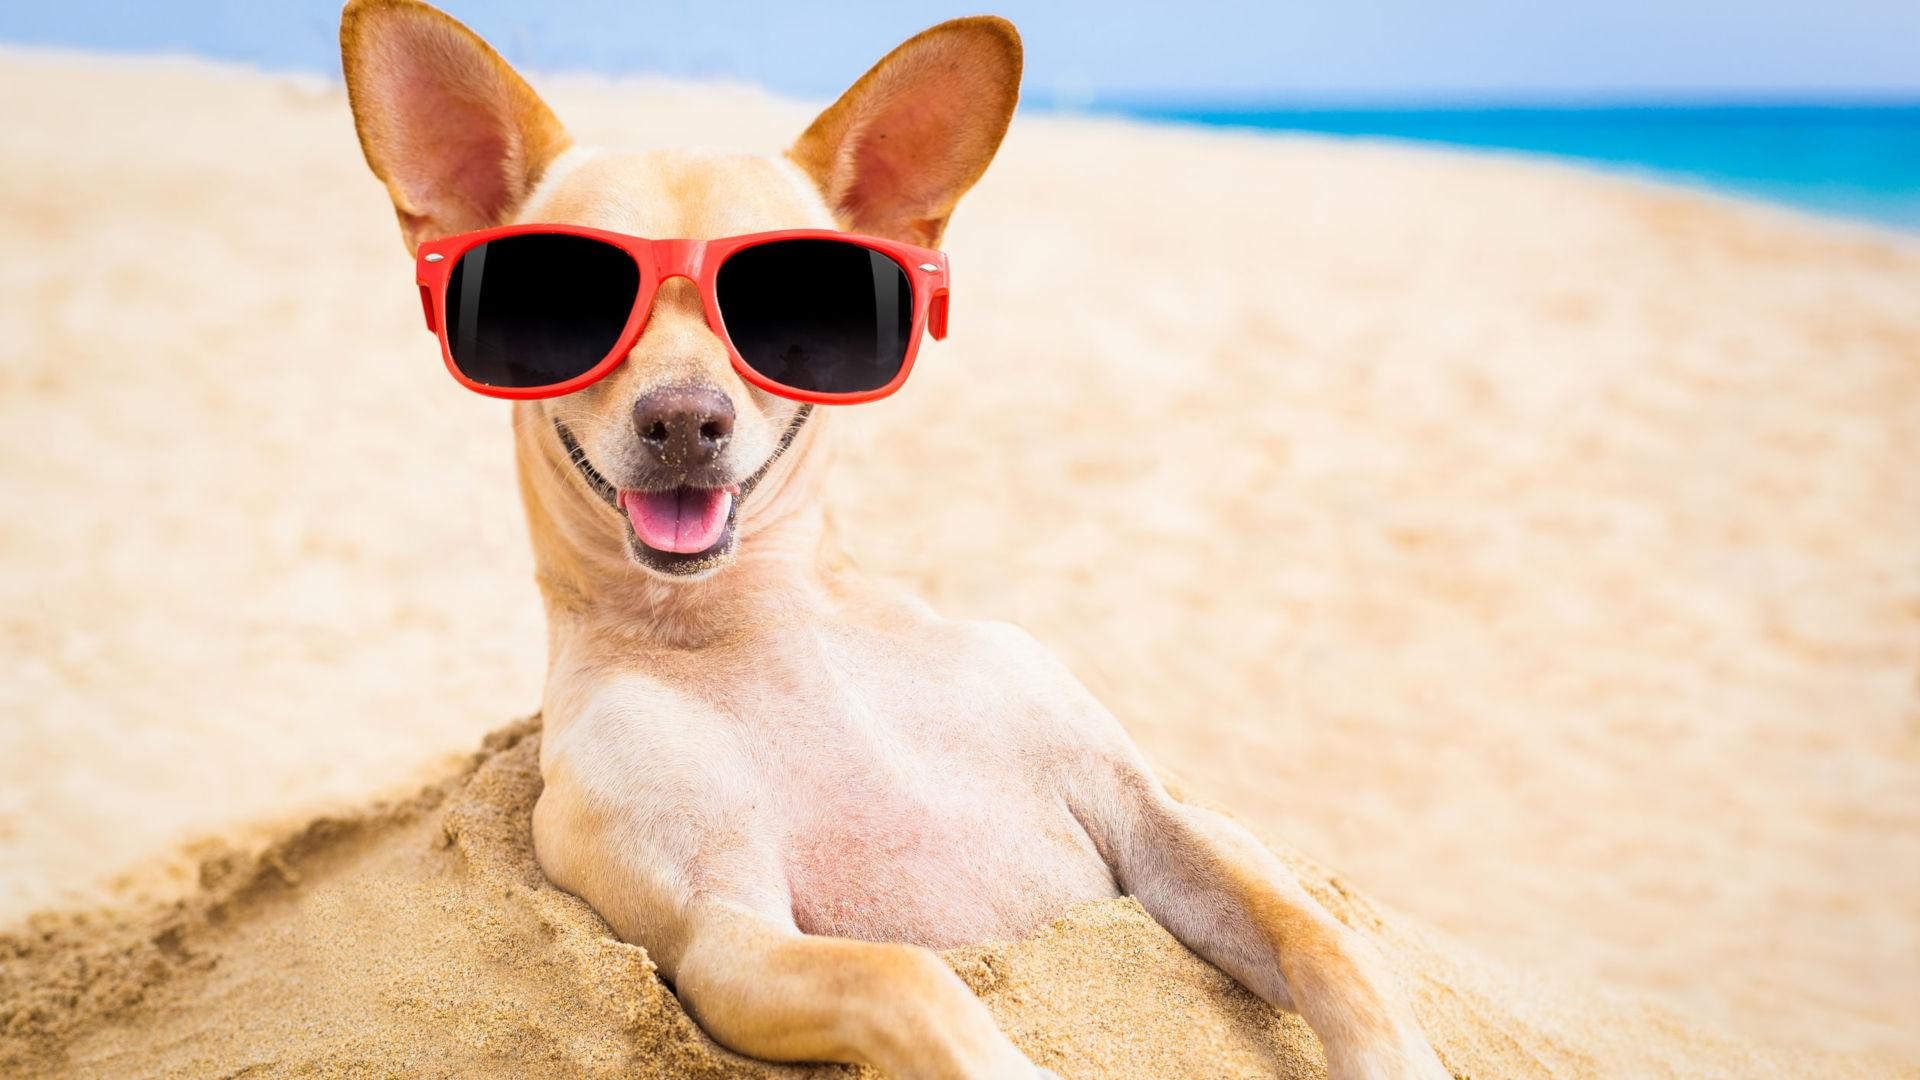 Chihuahua Dog Relaxing On The Beach With Sunglasses On